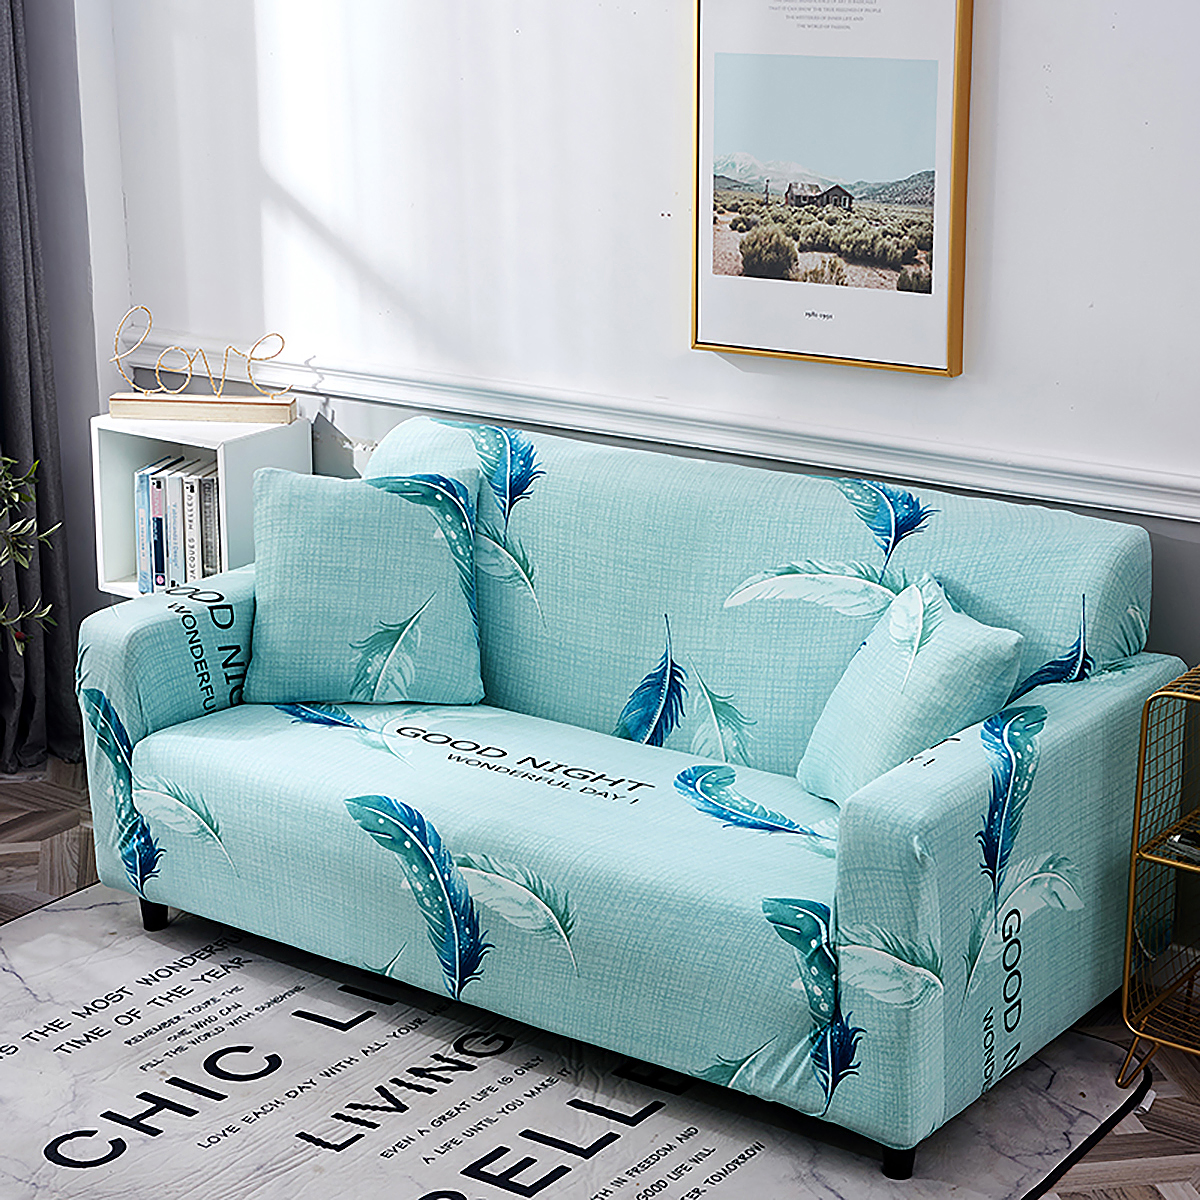 1-2-3-4-SEATER-SOFA-COVERS-Elastic-Fabric-Loveseat-Couch-Settee-Slipcover miniatuur 44